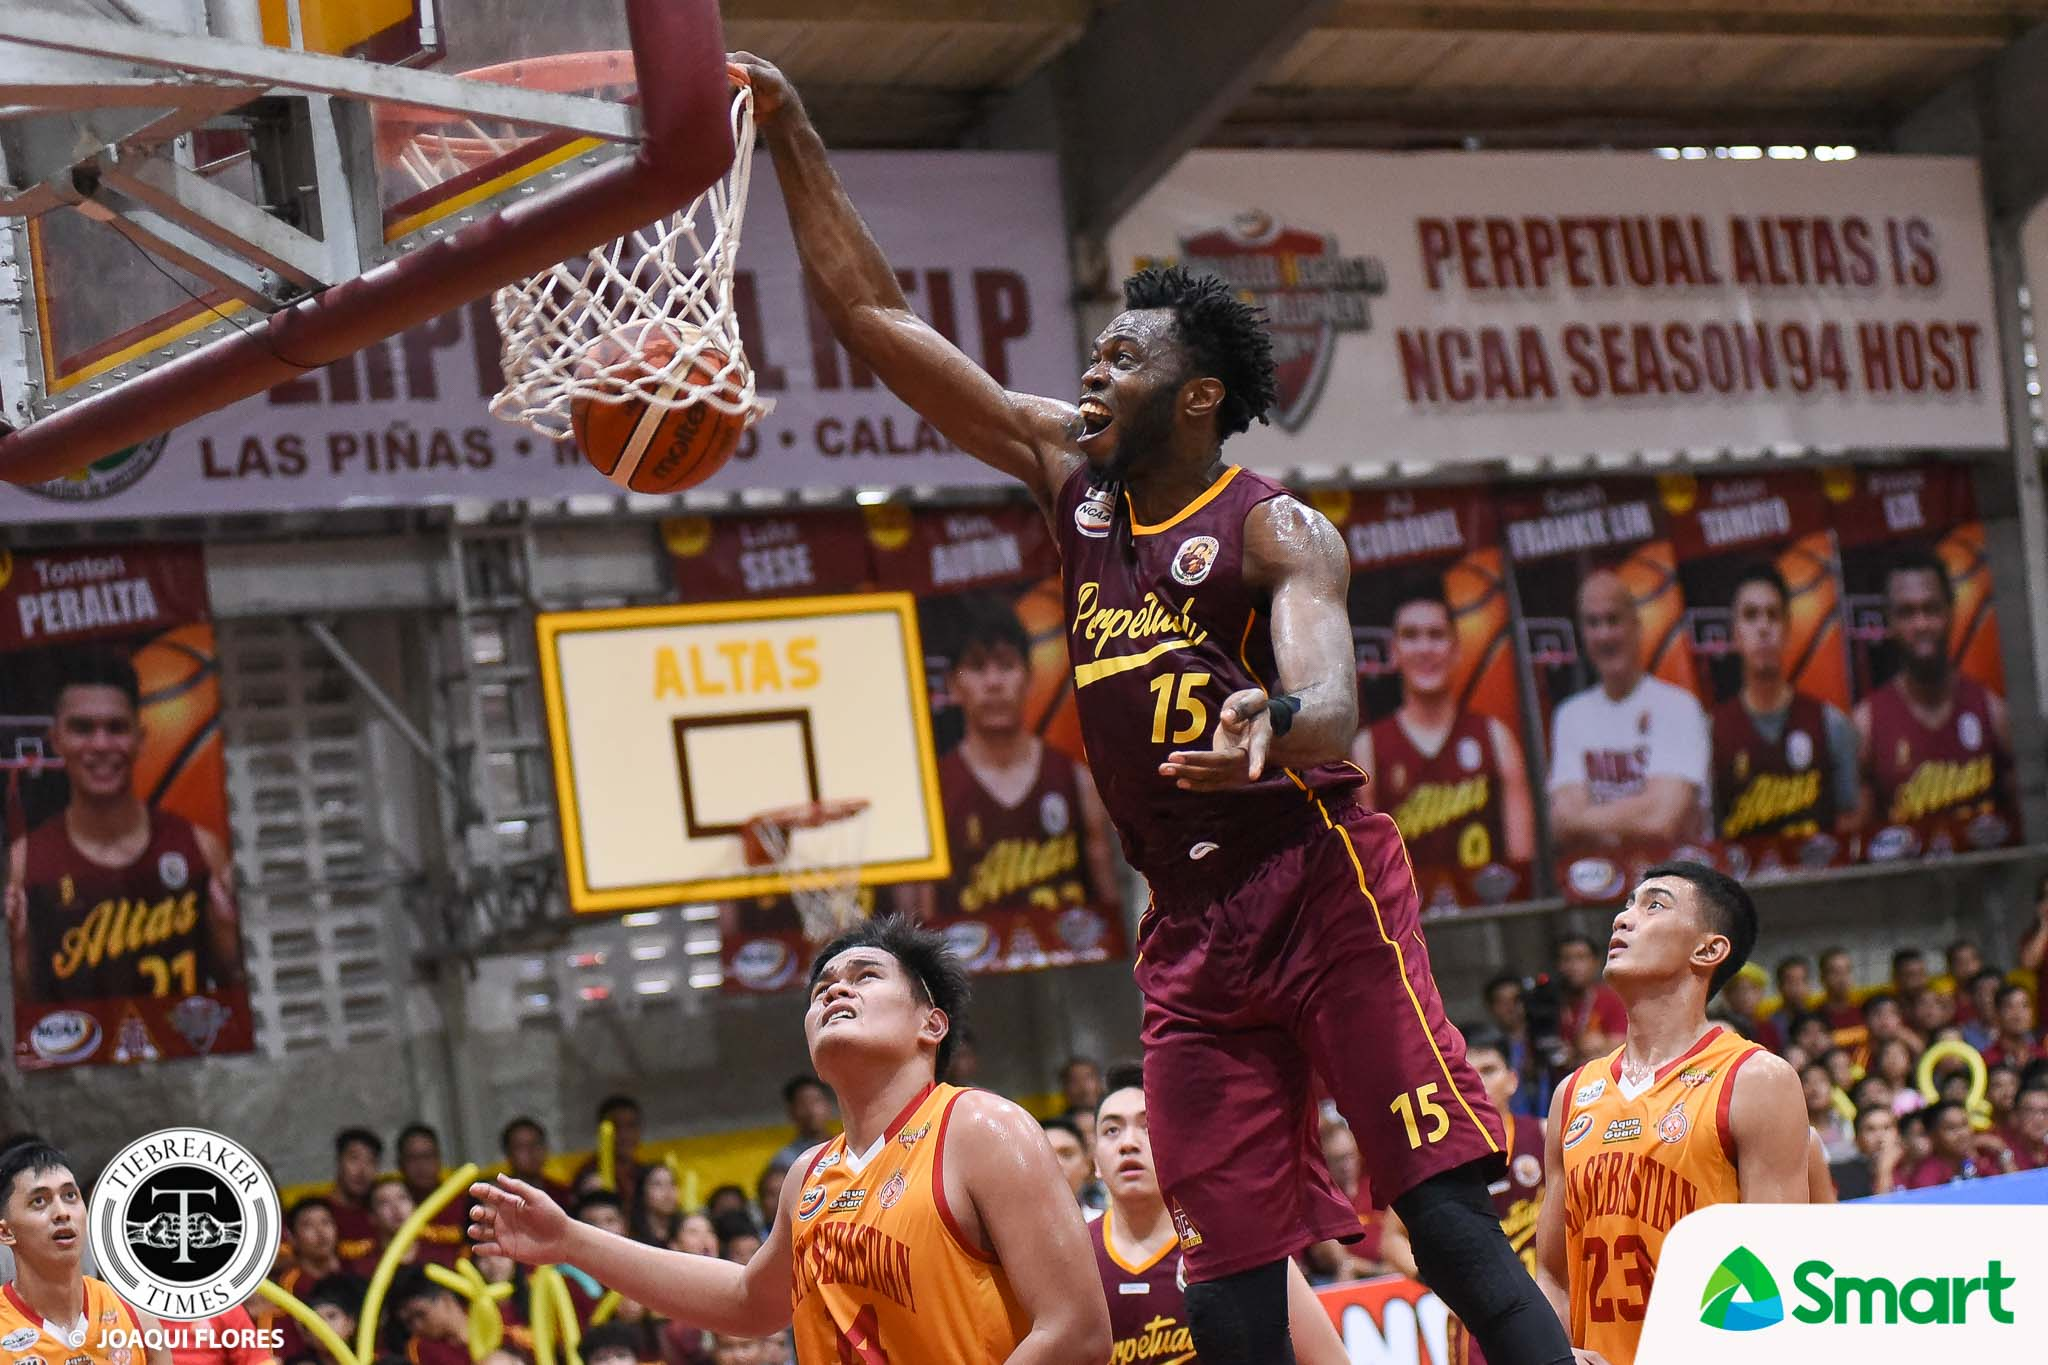 Tiebreaker Times Prince Eze did not want to lose for Perpetual Basketball NCAA News UPHSD  Prince Eze Perpetual Seniors Basketball NCAA Season 94 Seniors Basketball NCAA Season 94 Frankie Lim